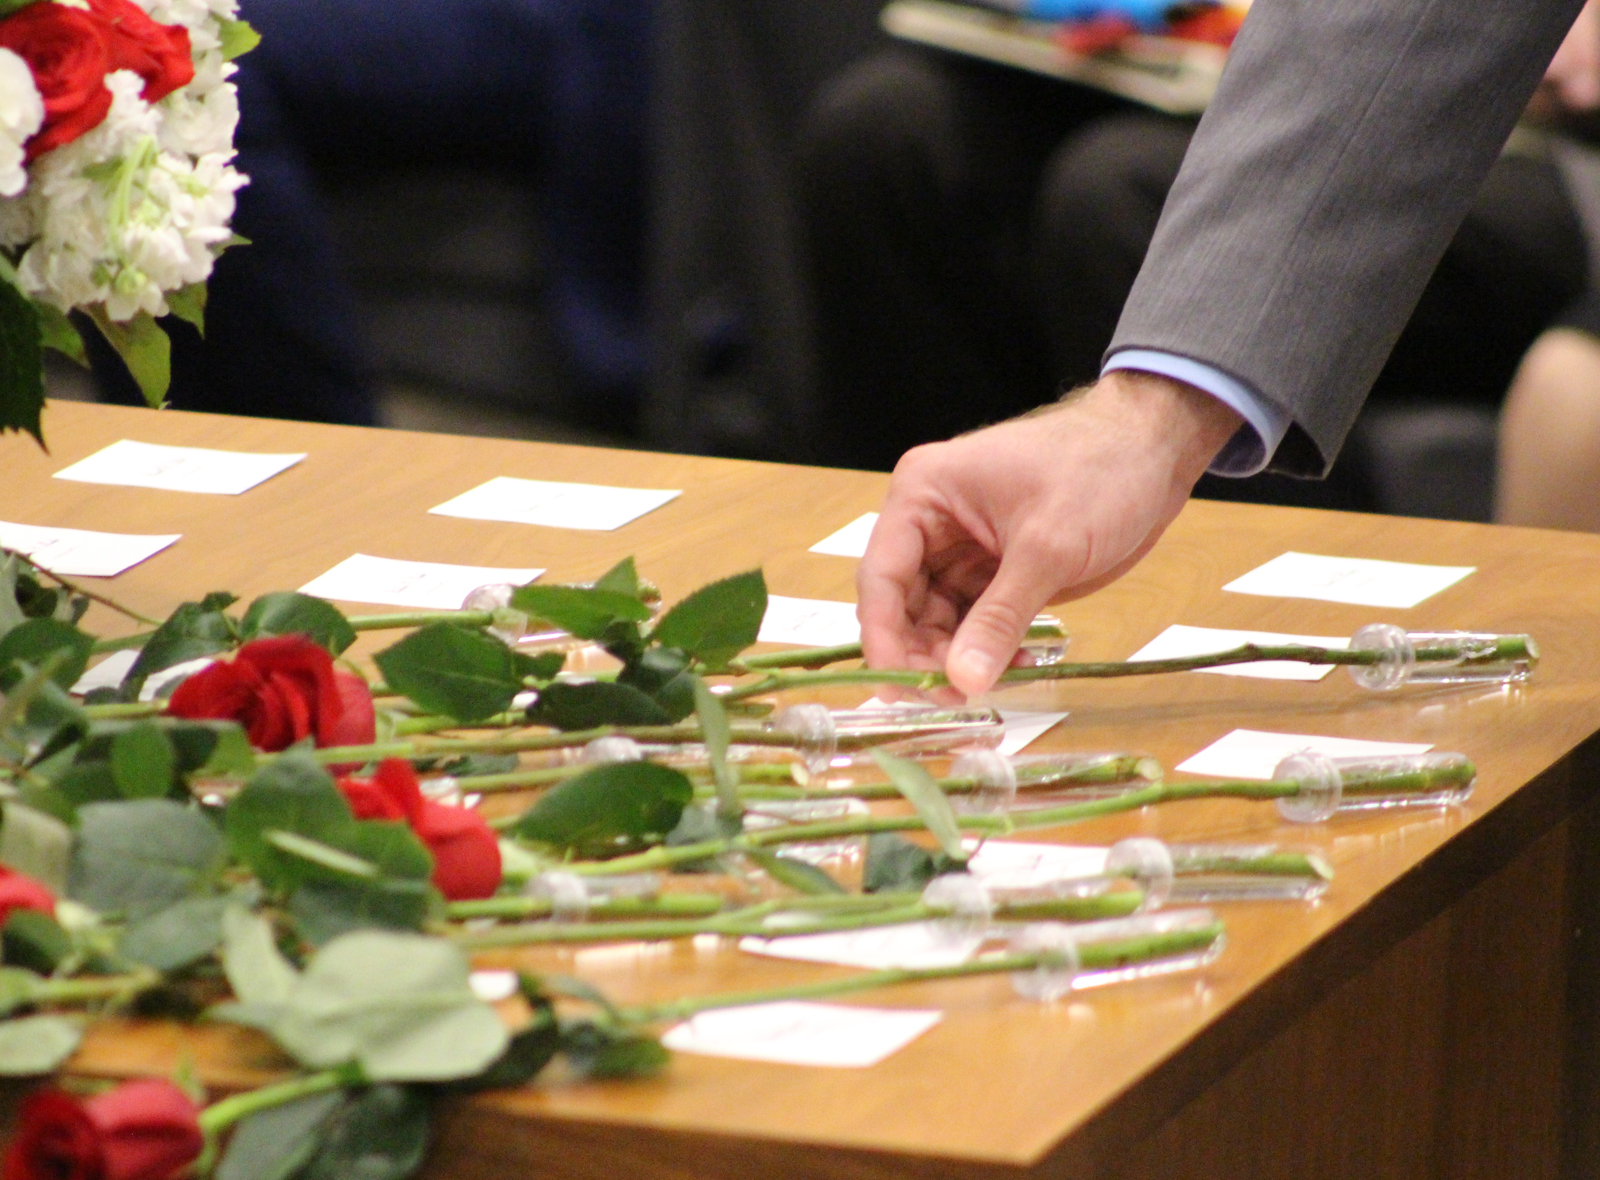 A rose is placed next to the name of an attorney who passed away in 2018-19 during the recognition of the absent at the Omaha Bar Association's annual Memorial Day Program in the legislative chamber of the Omaha-Douglas Civic Center on May 10, 2019. (Photo by Scott Stewart)